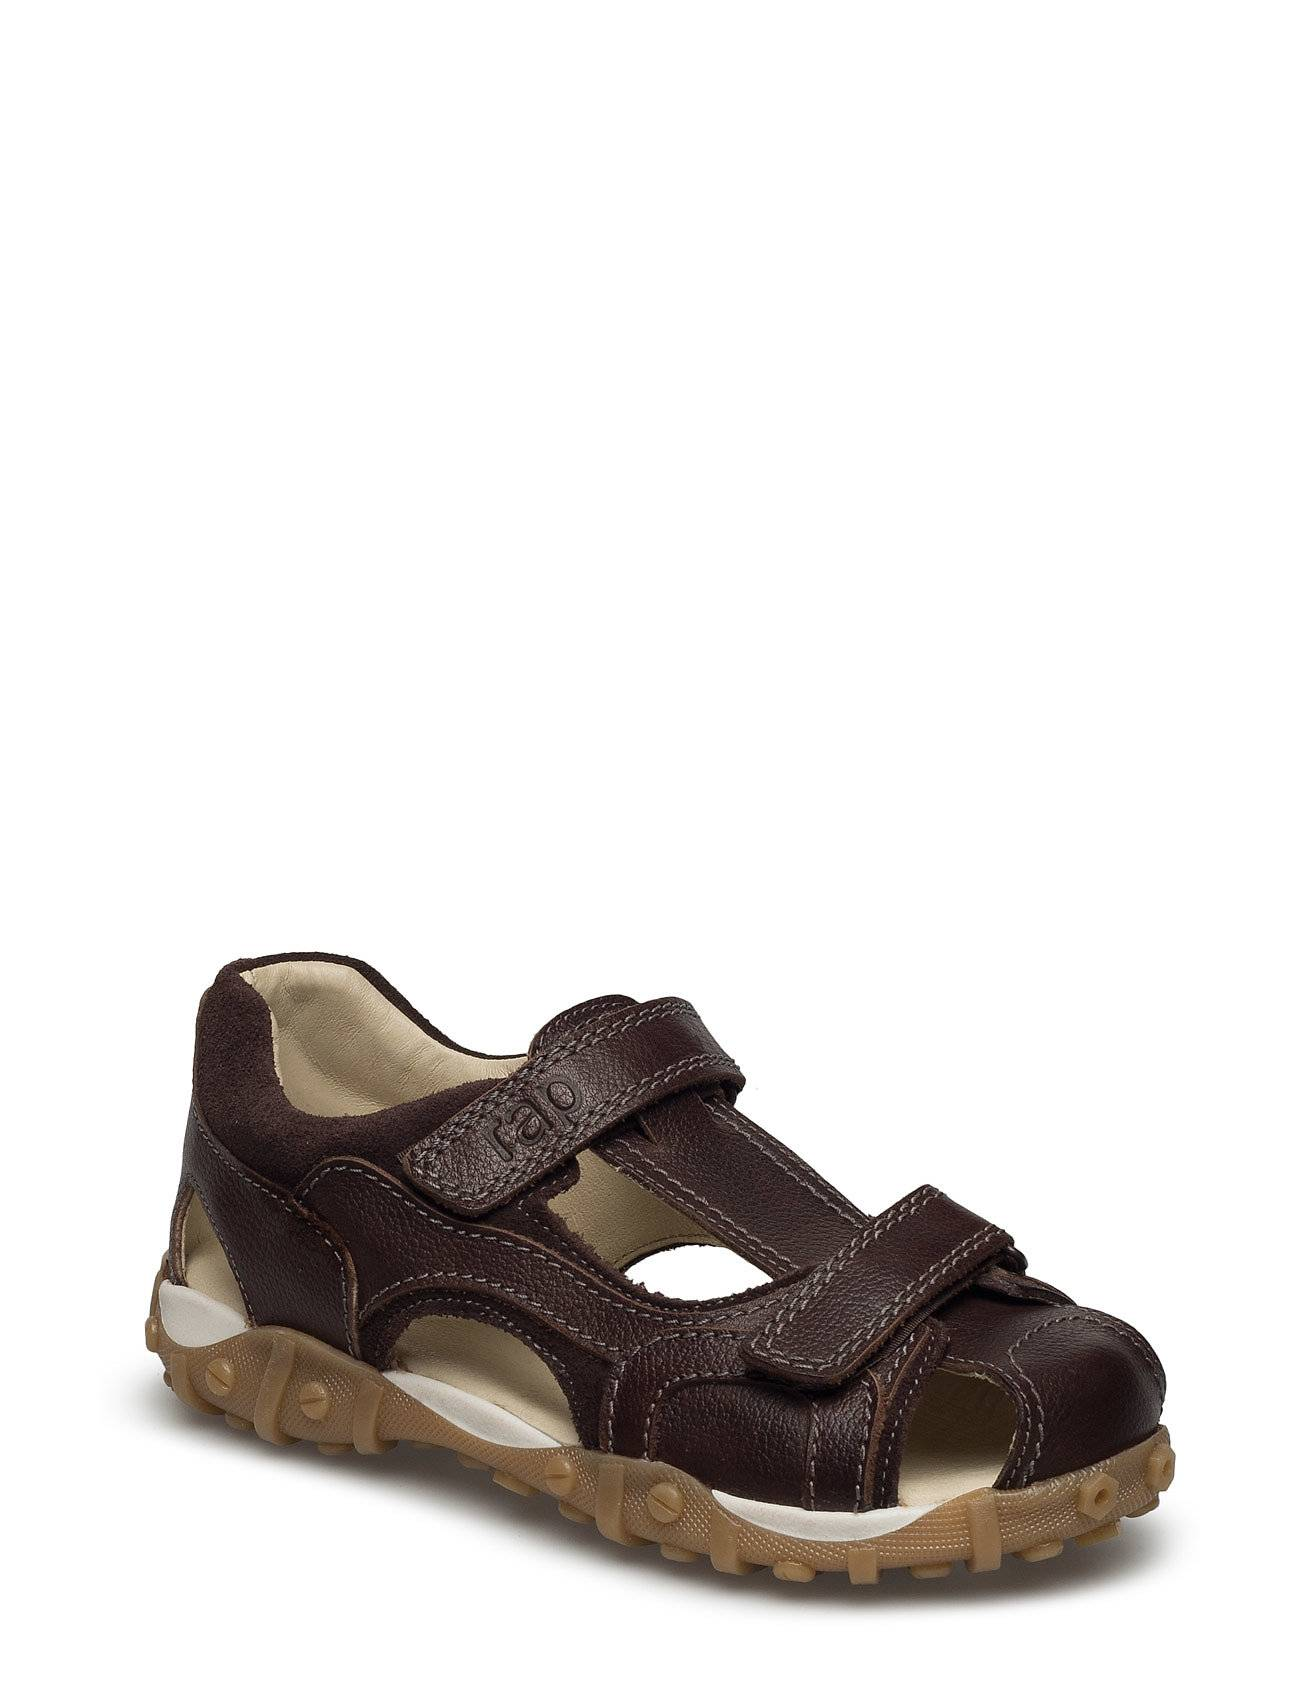 Arauto RAP Ecological Hand Made Closed Sandal, Wide Fit